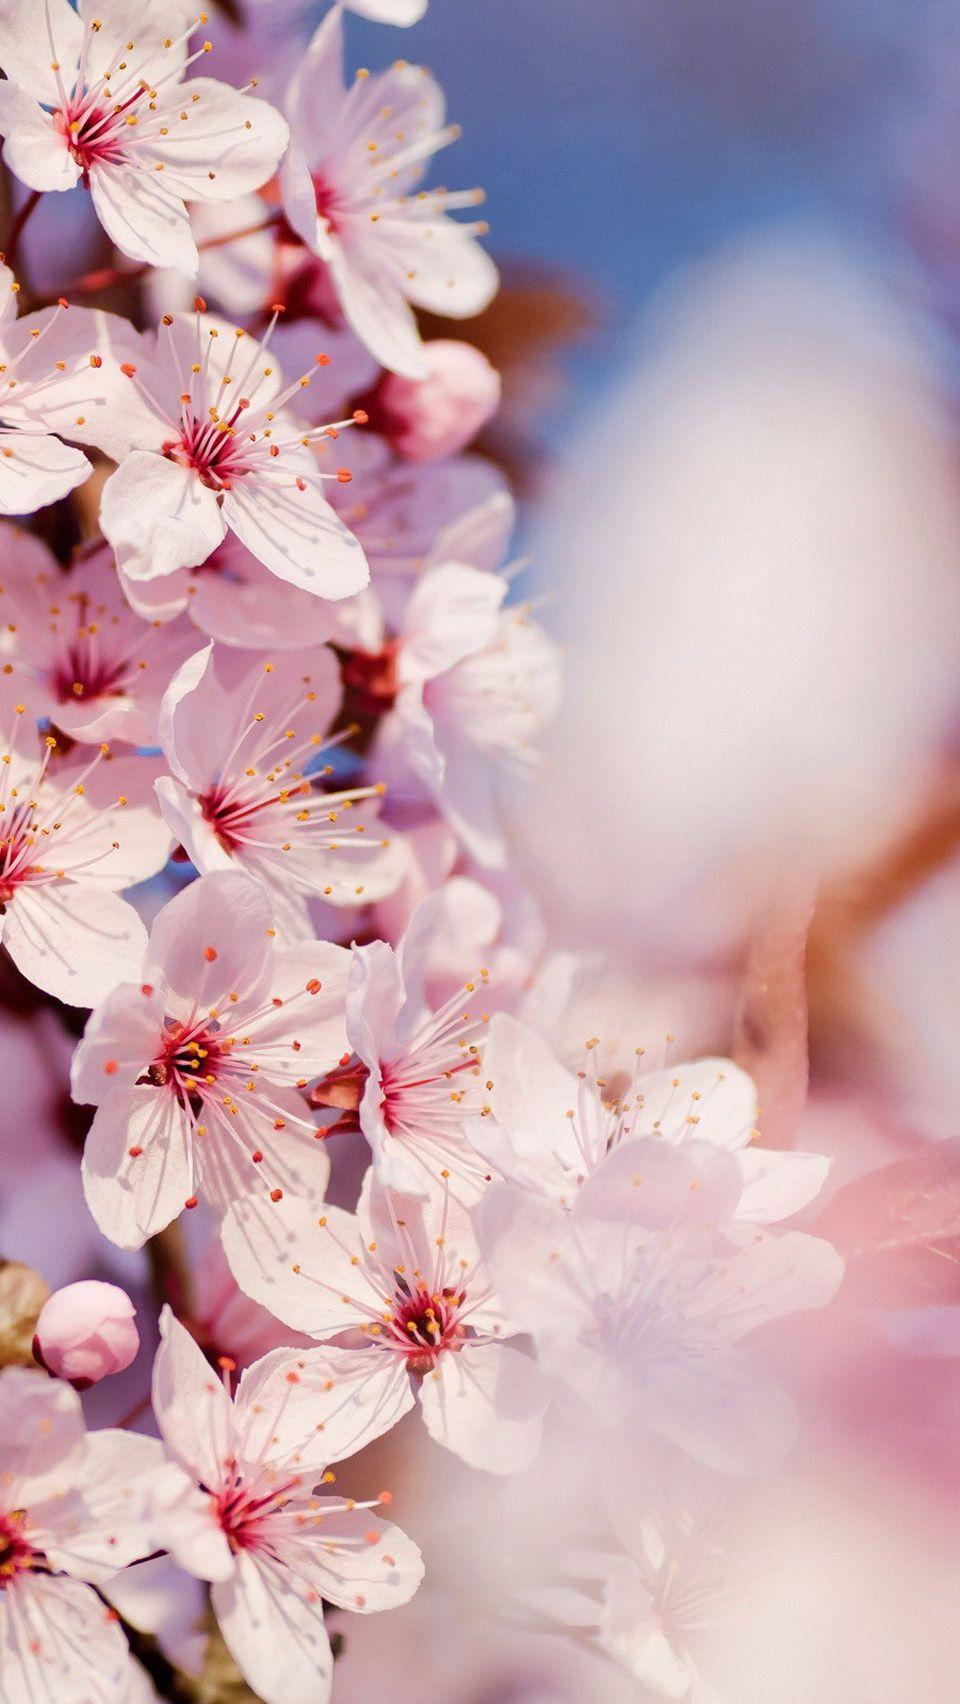 Cherry Blossoms Ps4 Anime Wallpapers Wallpaper Cave